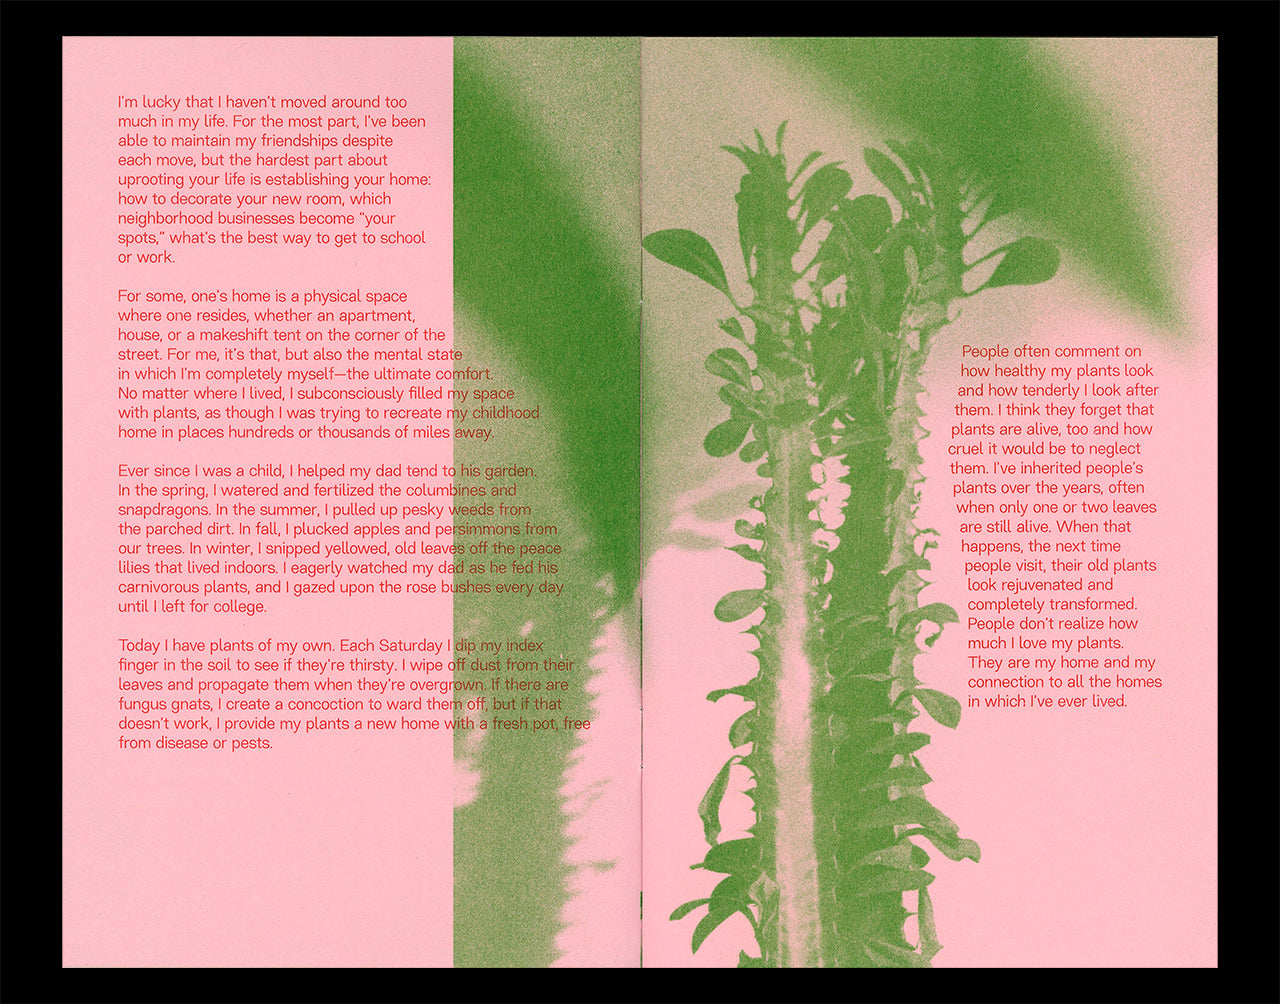 Interior spread of Nicole M. Doan's Portraits of Home showing plants printed in kelly green and text printed in scarlet Riso ink on a pink paper background.